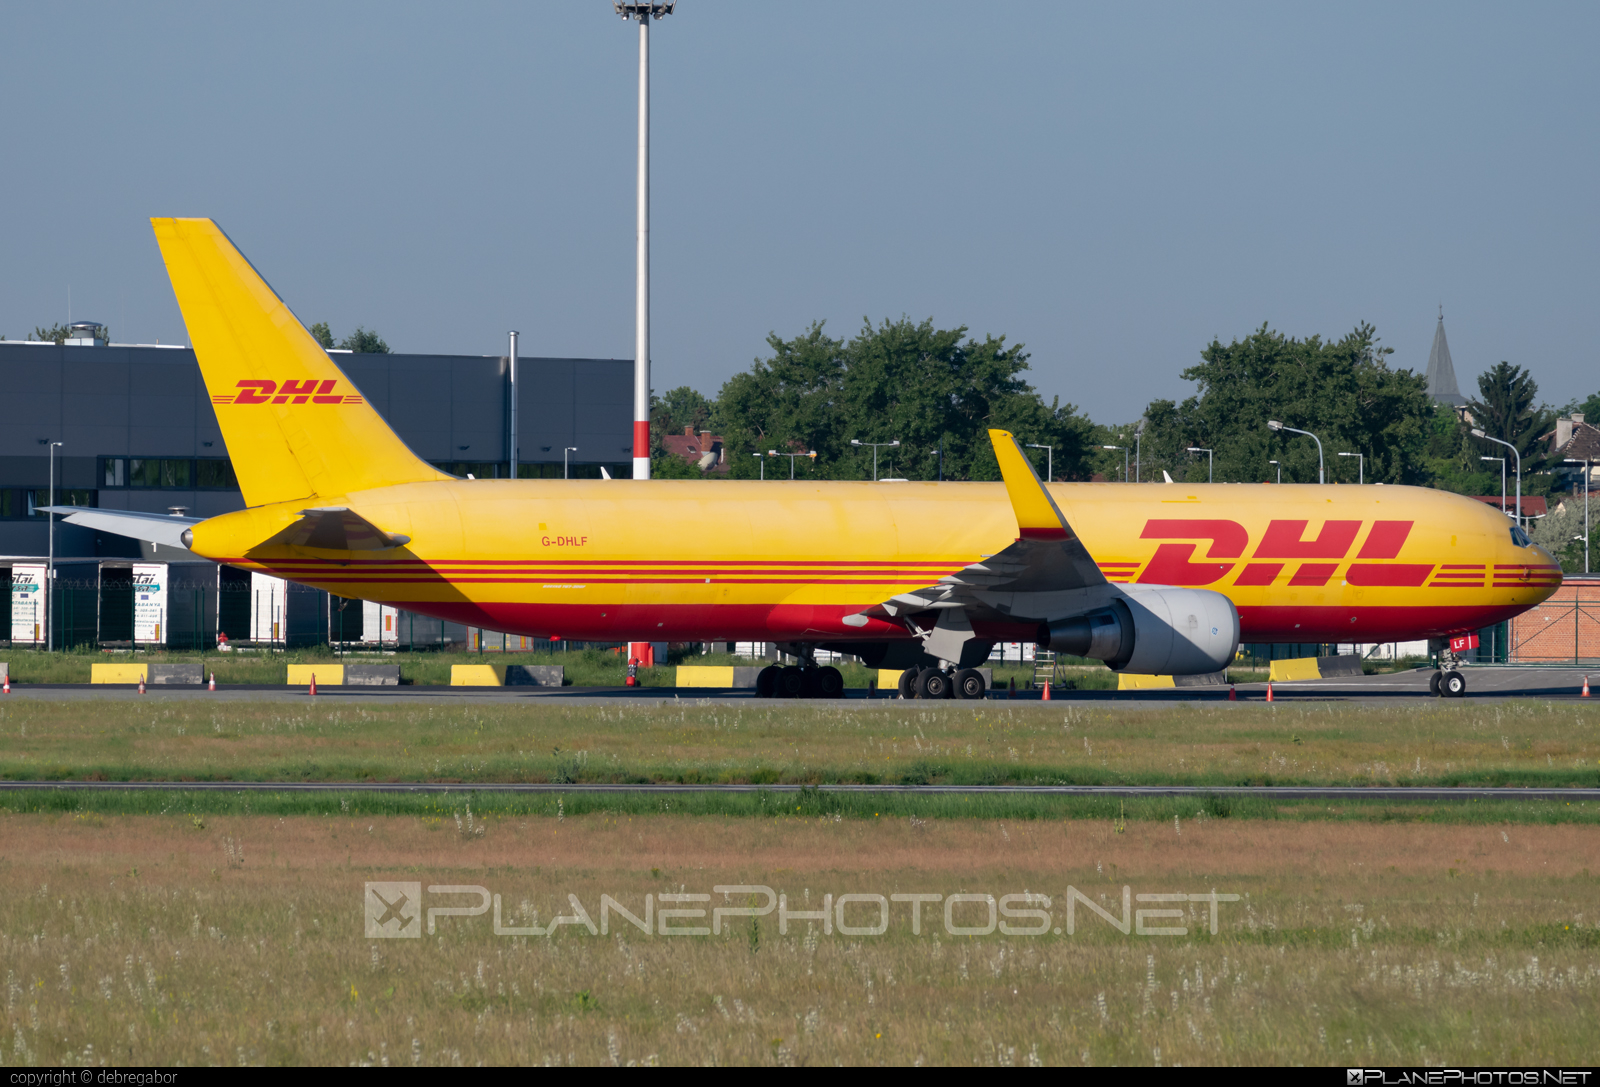 Boeing 767-300F - G-DHLF operated by DHL Air #b767 #b767f #b767freighter #boeing #boeing767